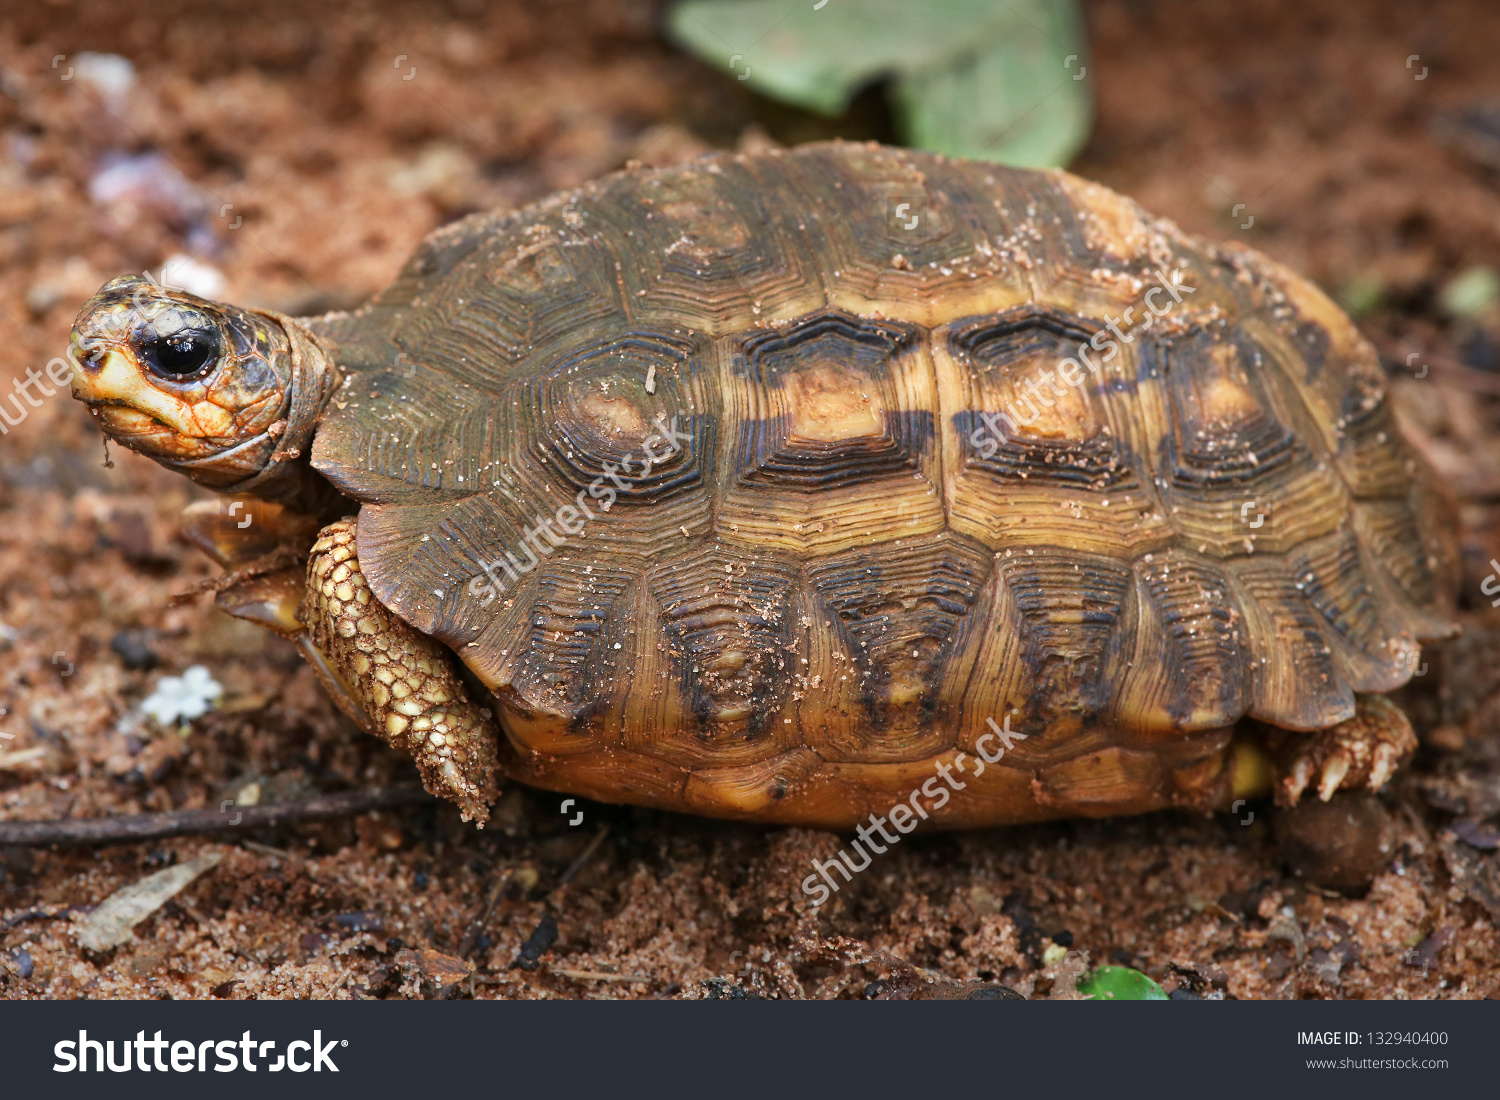 Spider Tortoise clipart #11, Download drawings